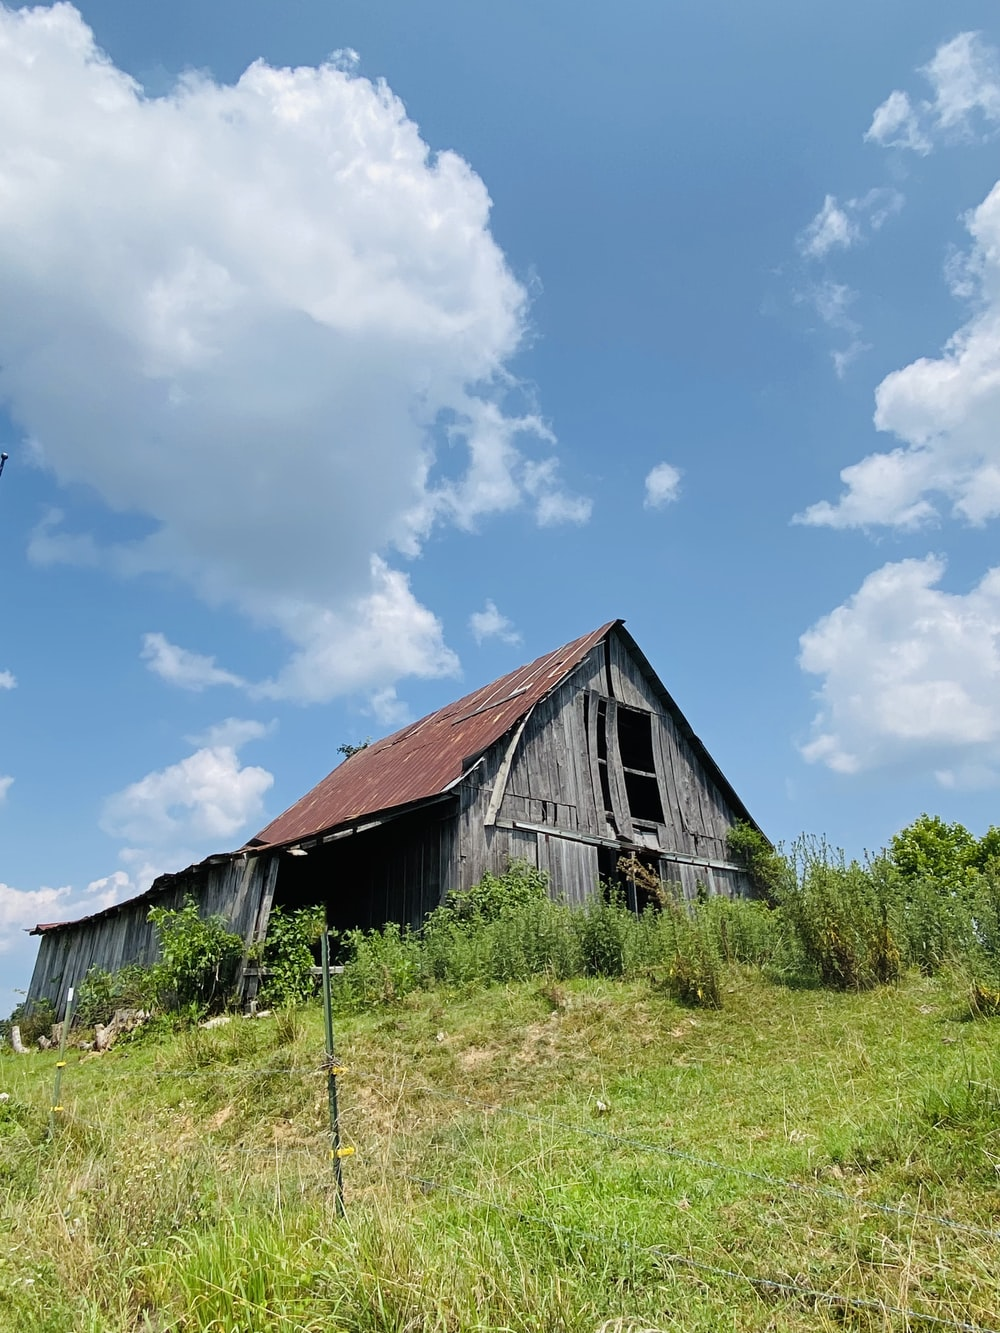 brown wooden barn on green grass field under blue and white sunny cloudy sky